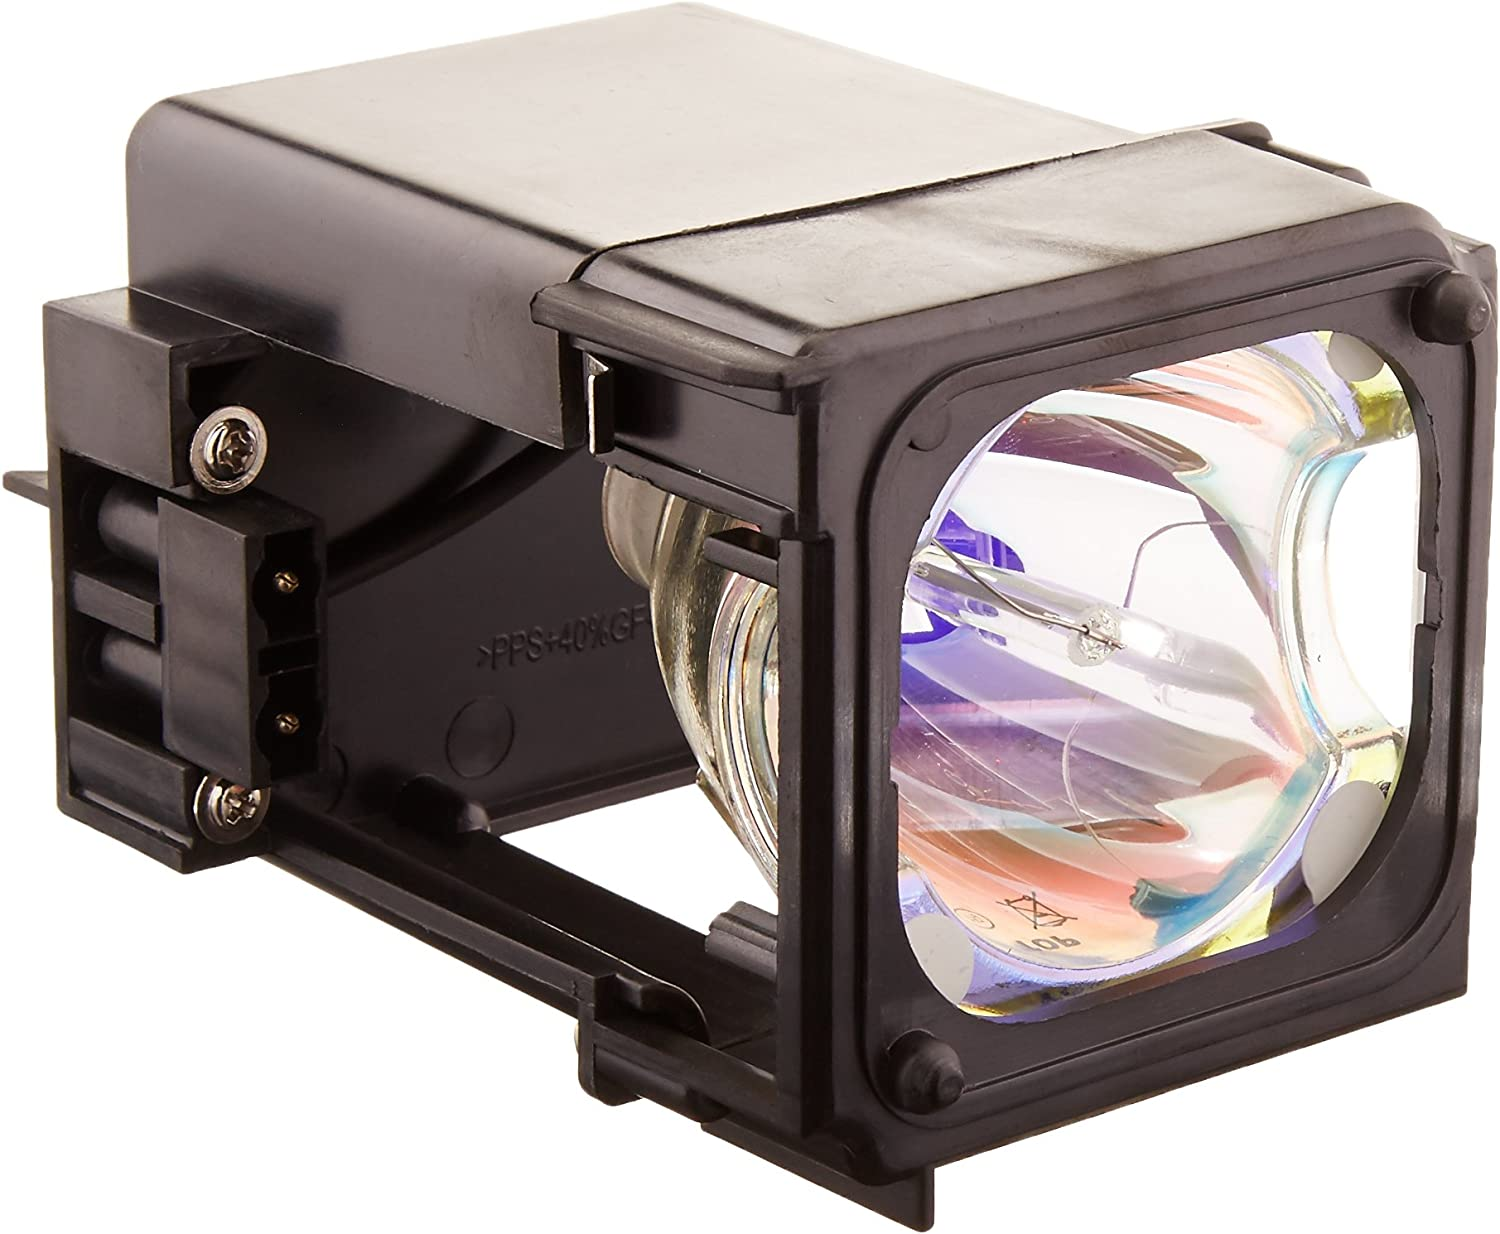 Tv Lamp with Housing for Samsung Hl-T5076S Bp96-01795Aprojector Hl-T6176S Projection Tv Hl-T5676S